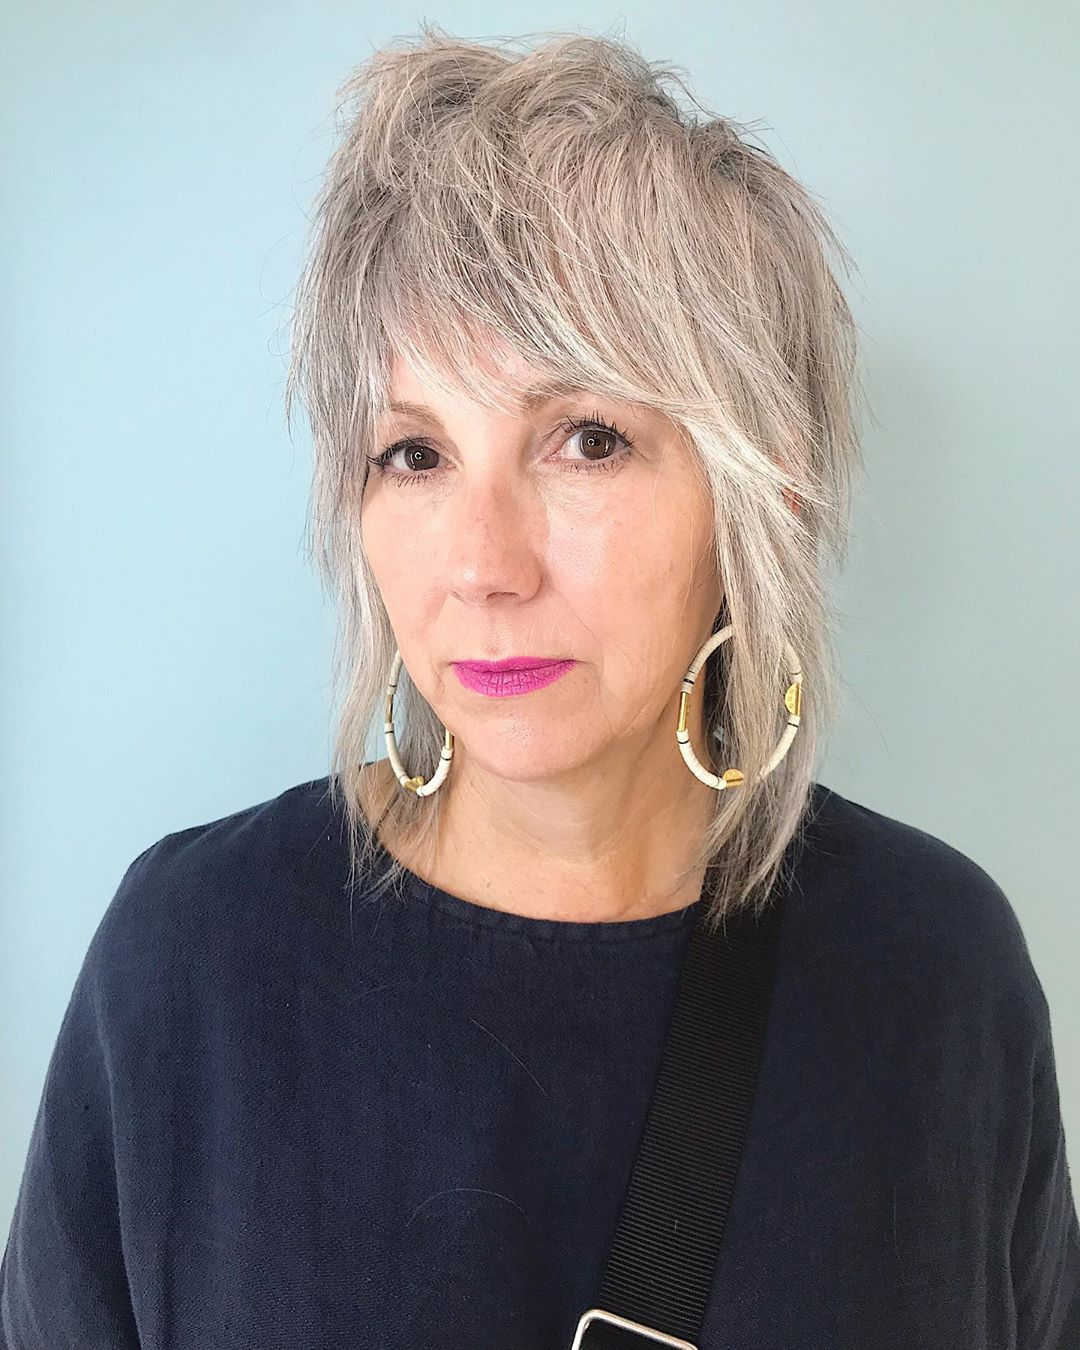 15 Modern Shaggy Hairstyles for Women with Fine Hair Over 50